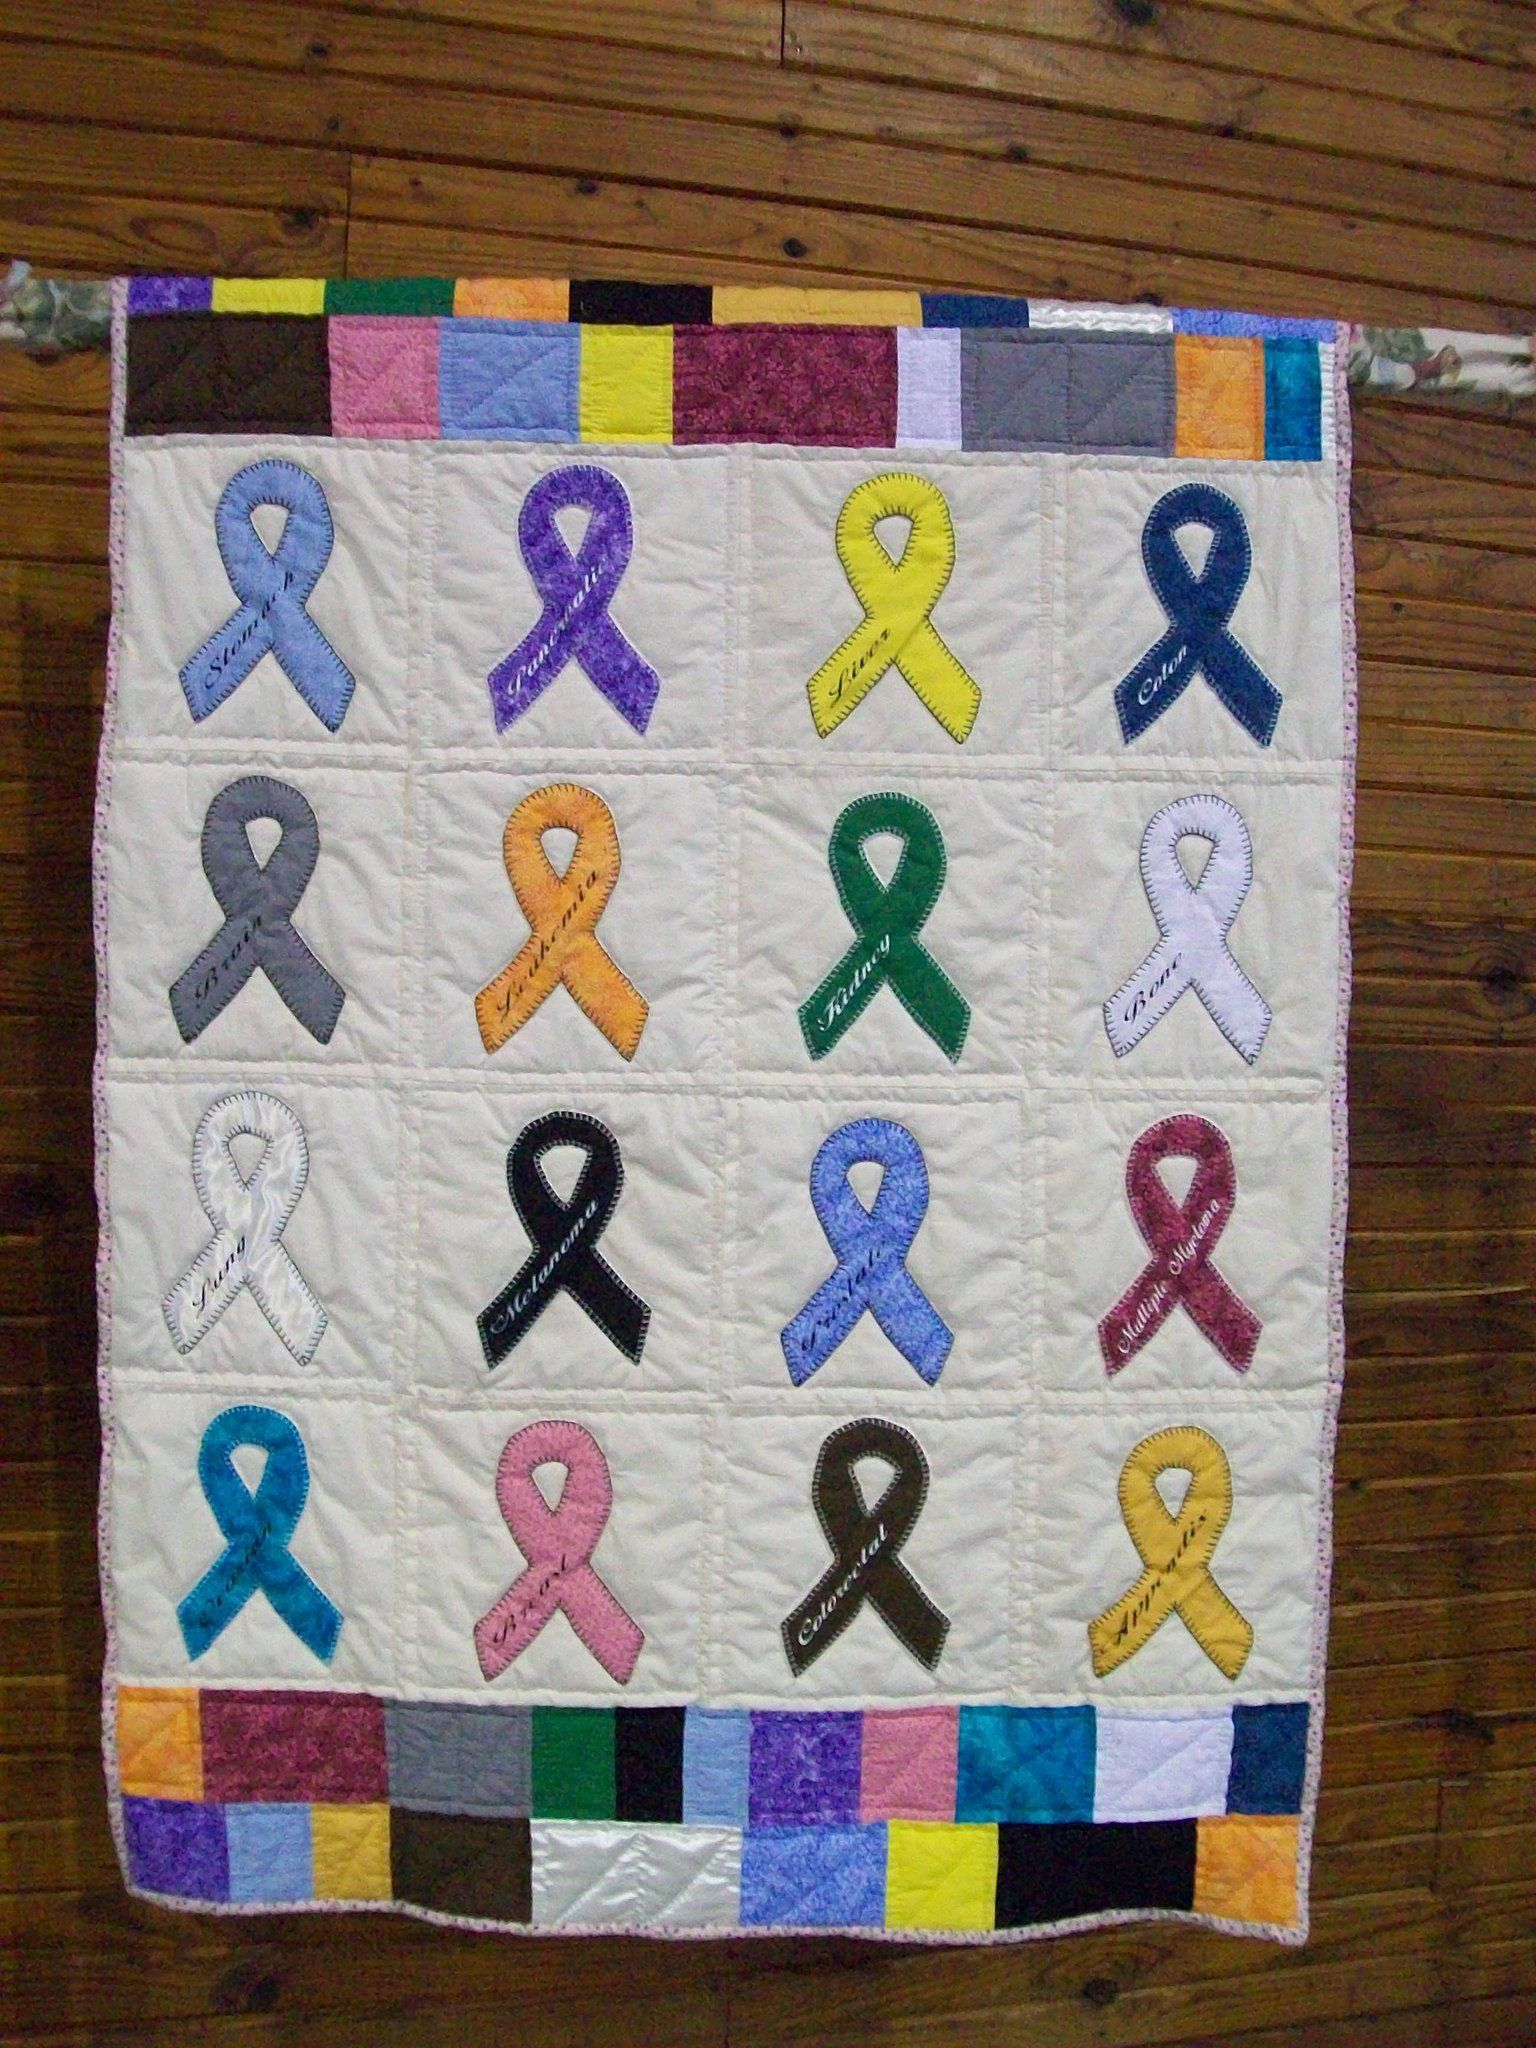 cancer quilt #1 made by my sis | Cancer patients | Pinterest ... : quilt patterns for cancer patients - Adamdwight.com